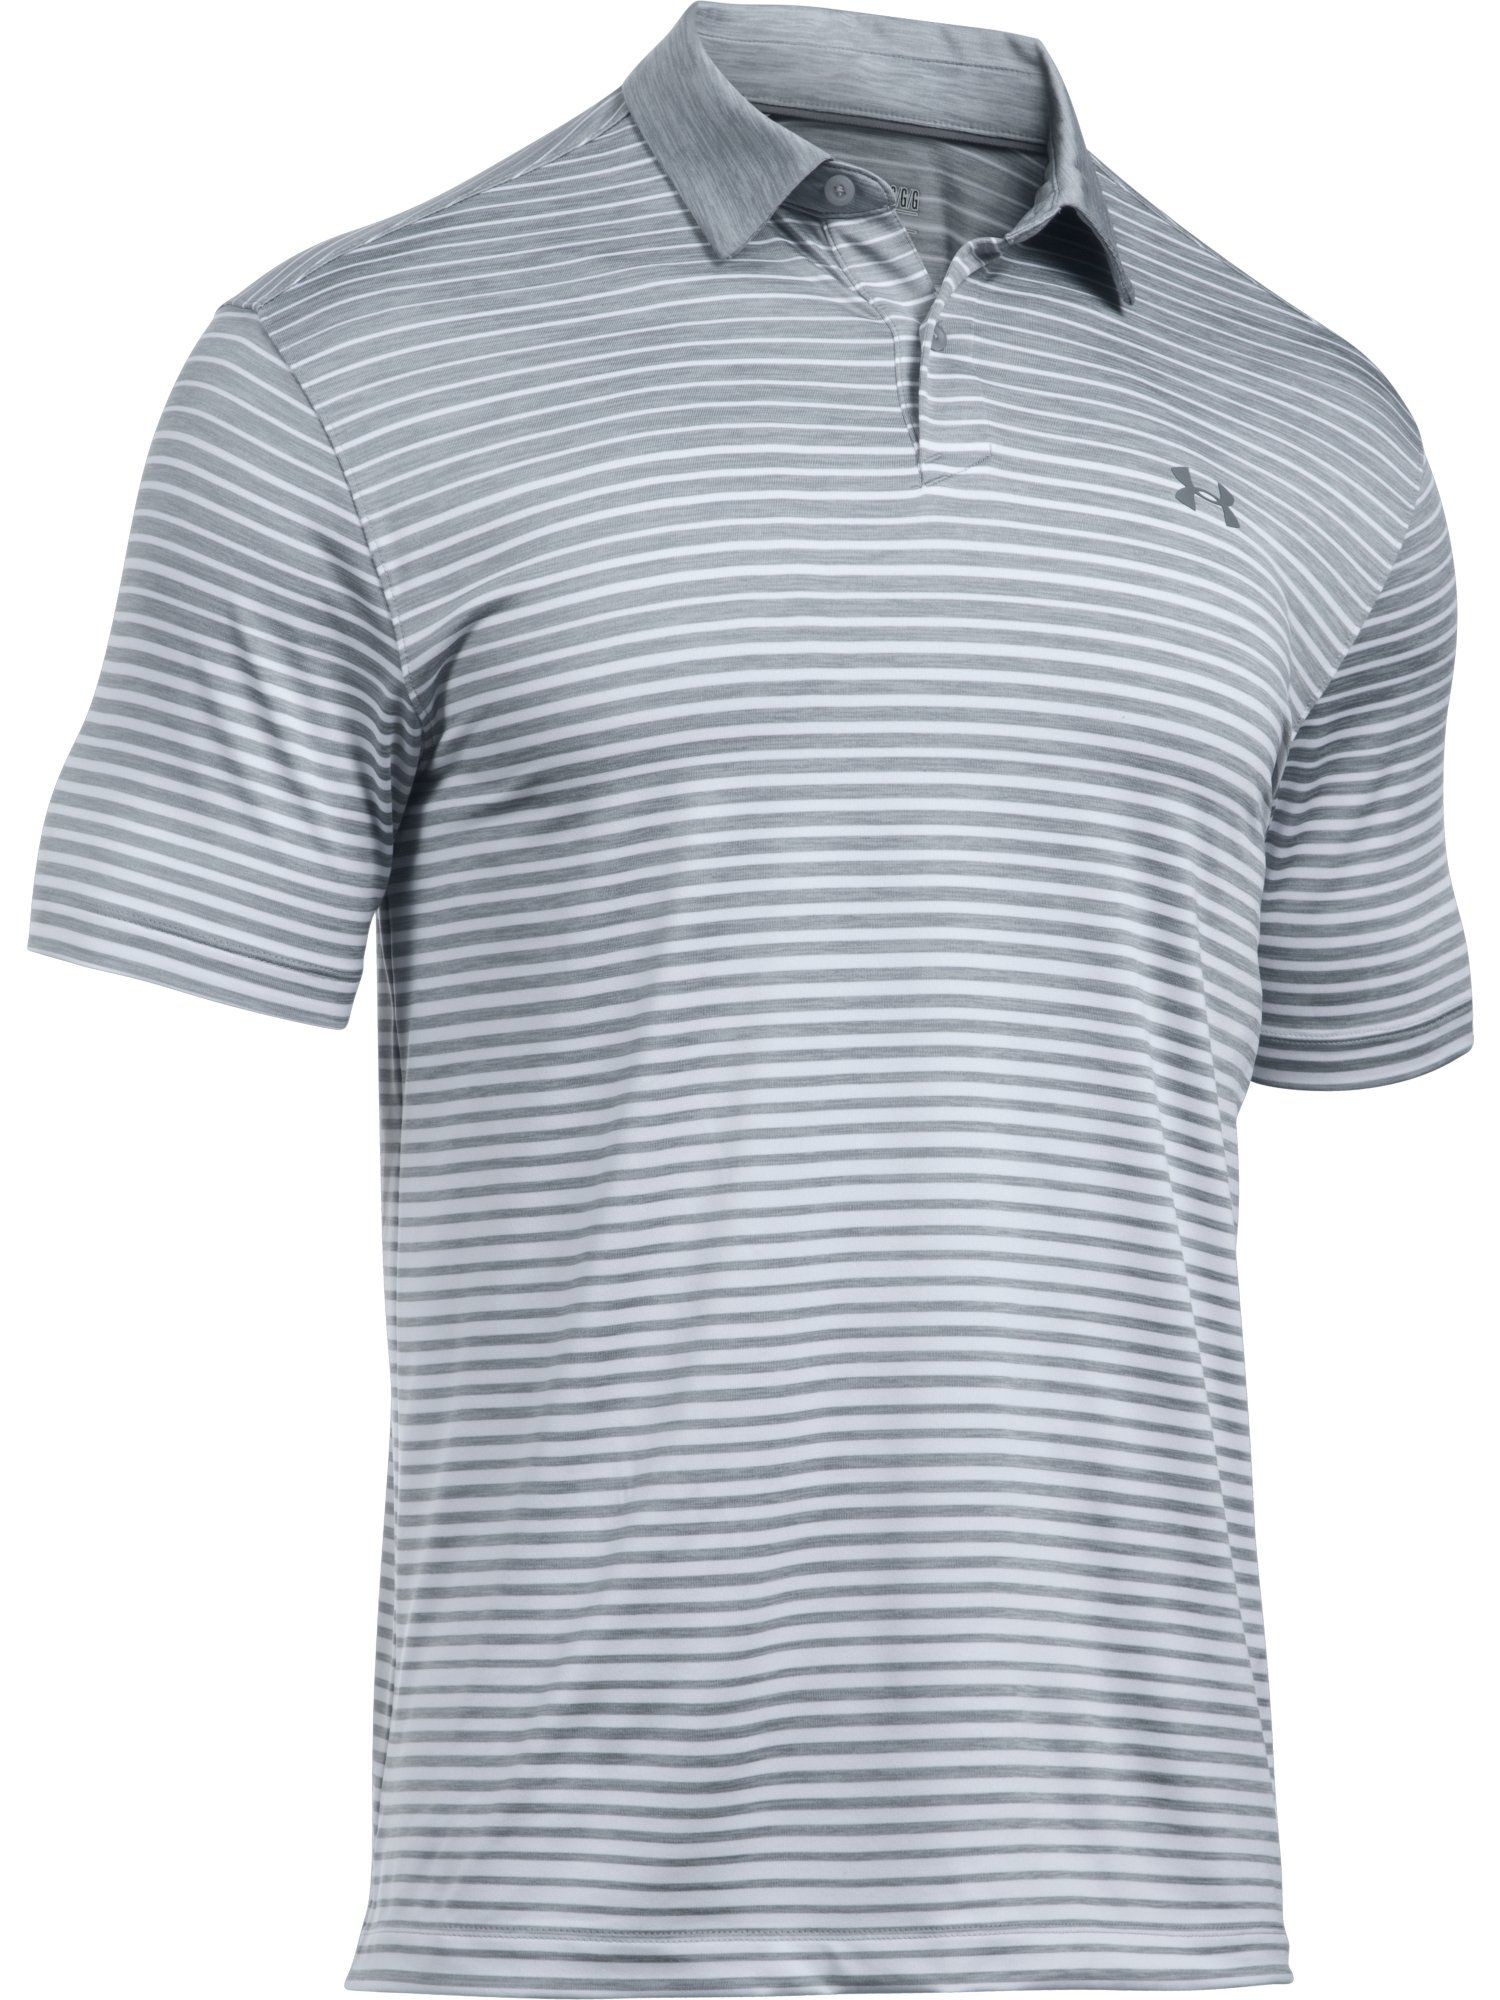 Men's Under Armour Trajectory Stripe Polo, Grey